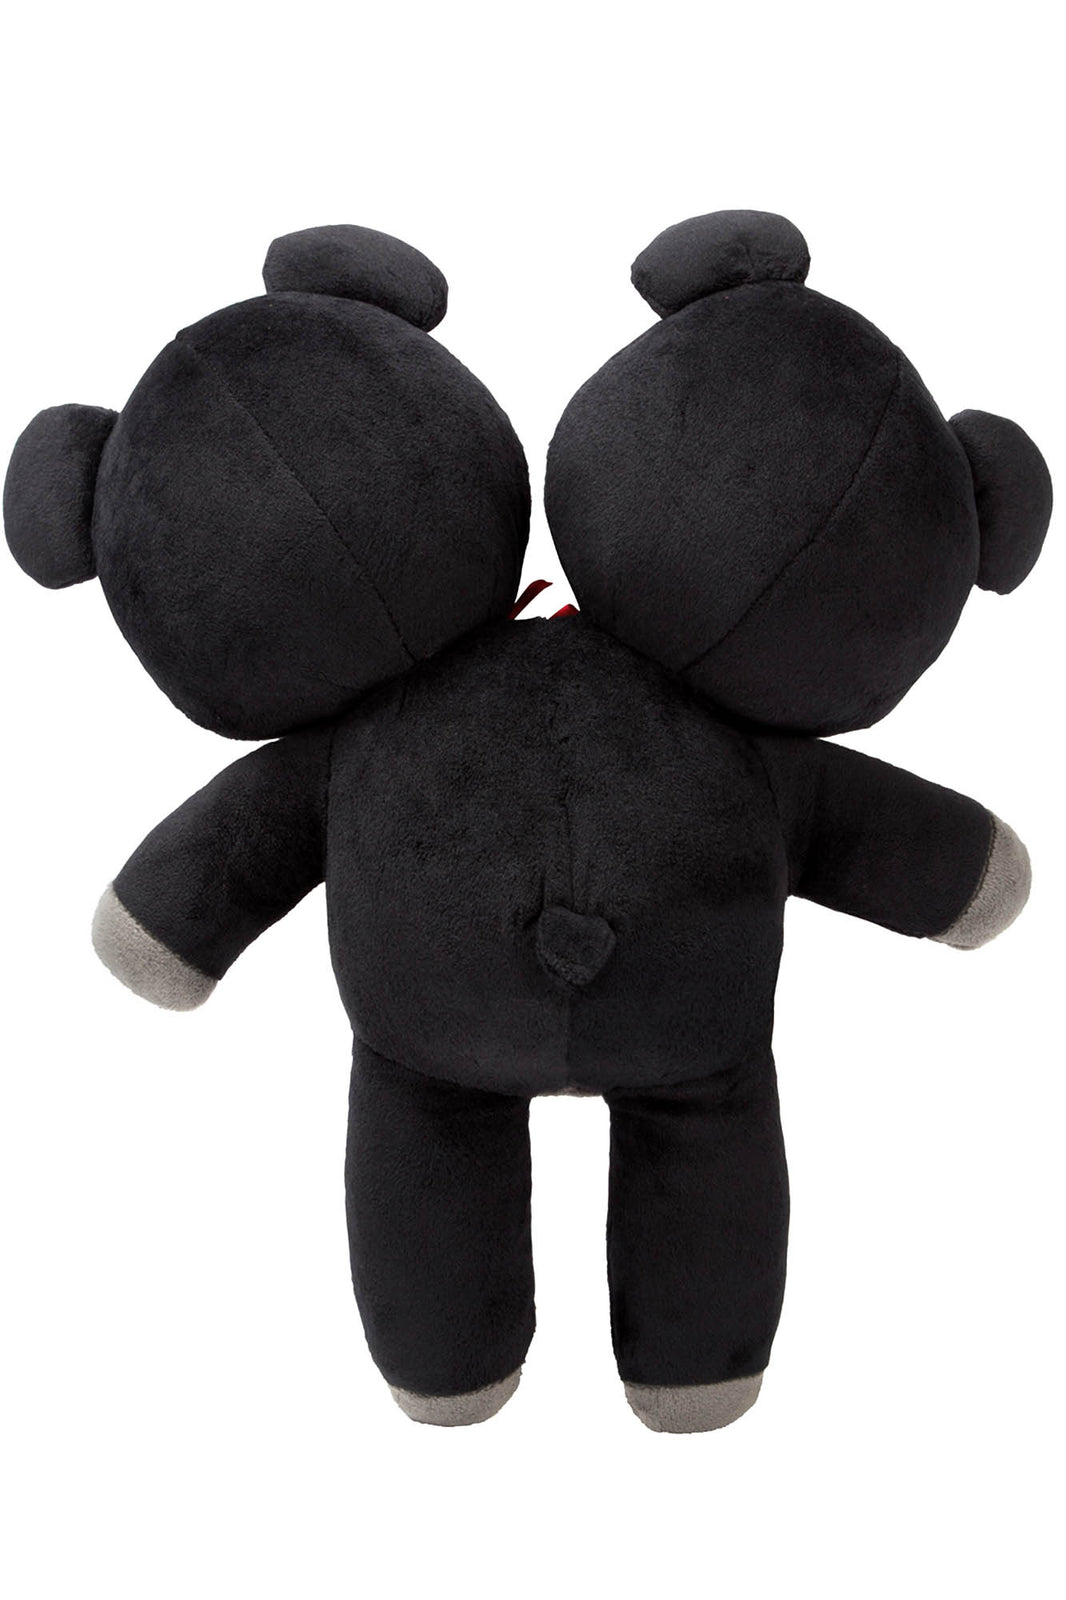 Duality Plush Toy